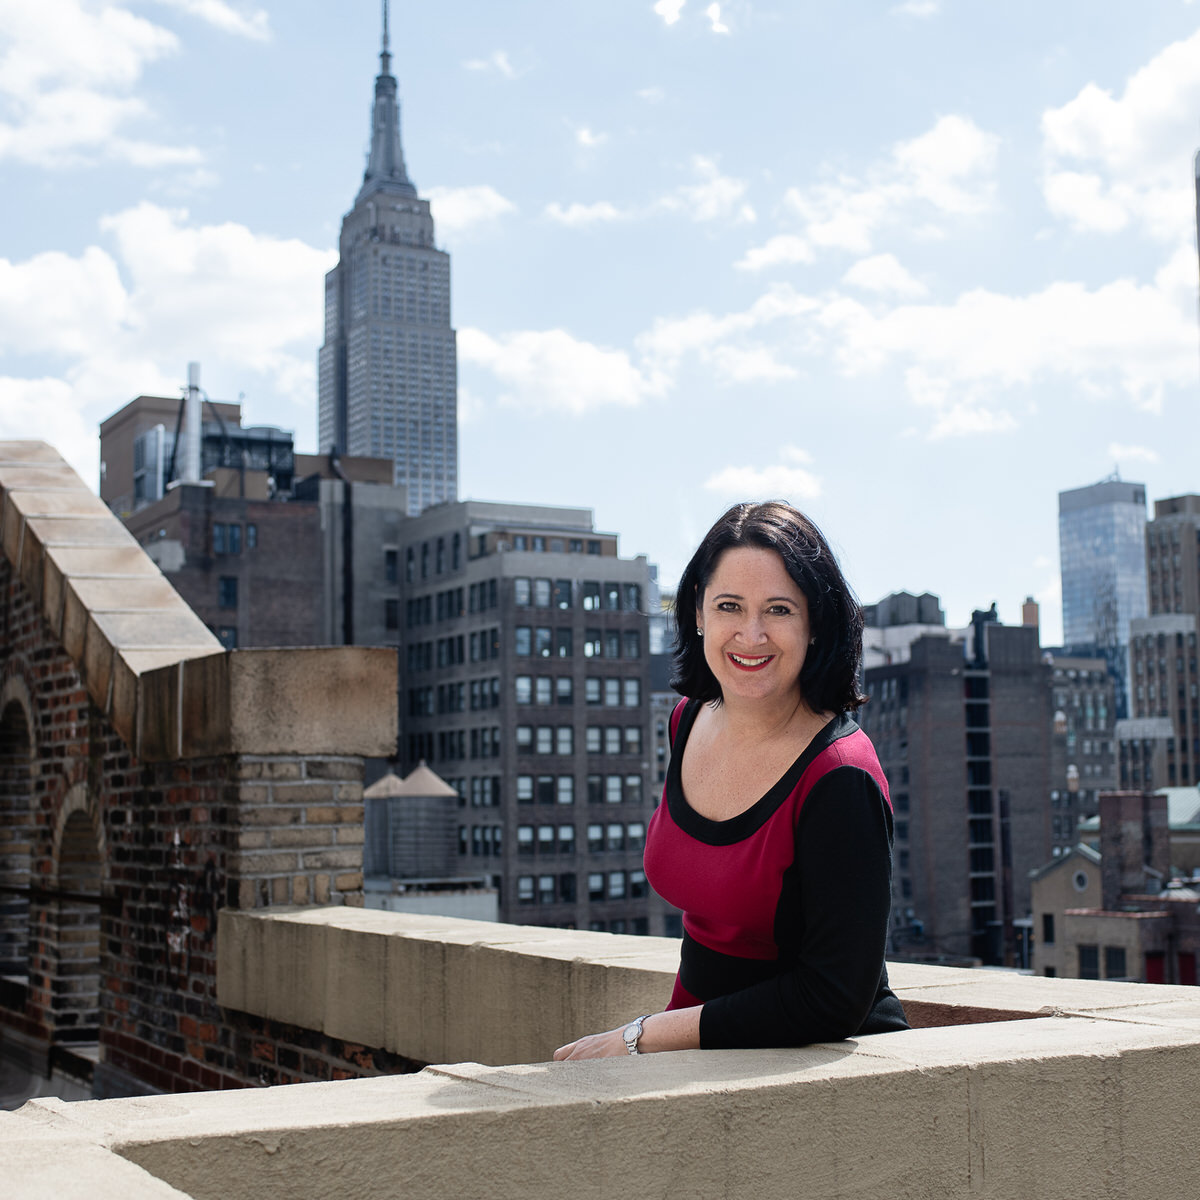 The book midwife with the New York City skyline behind her